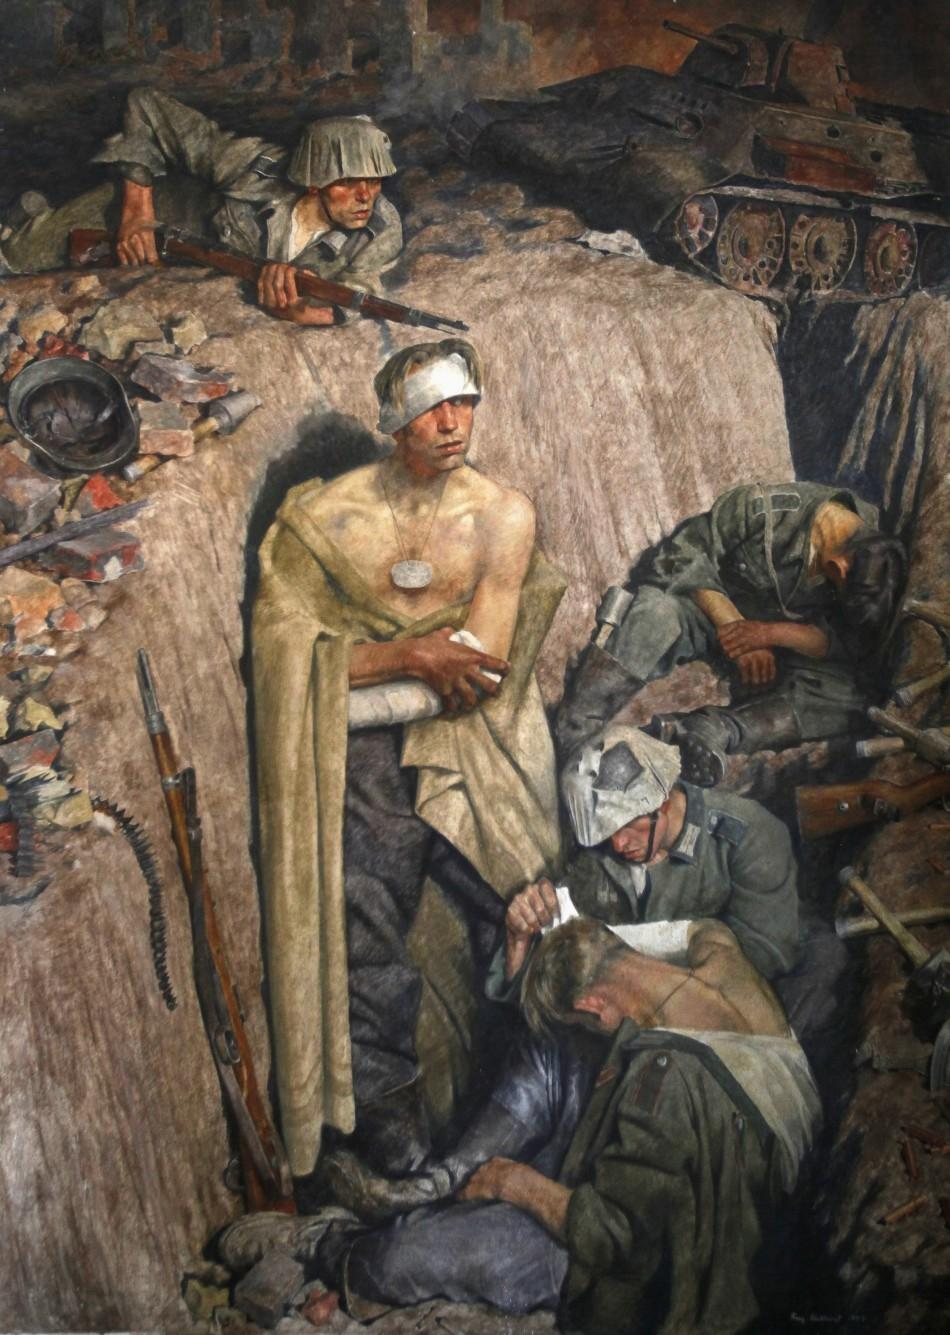 """Reminiscence on Stalingrad"" by German painter Eichhorst, a part of Adolf Hitler's private art collection, at the Doksany Monastery near Prague"